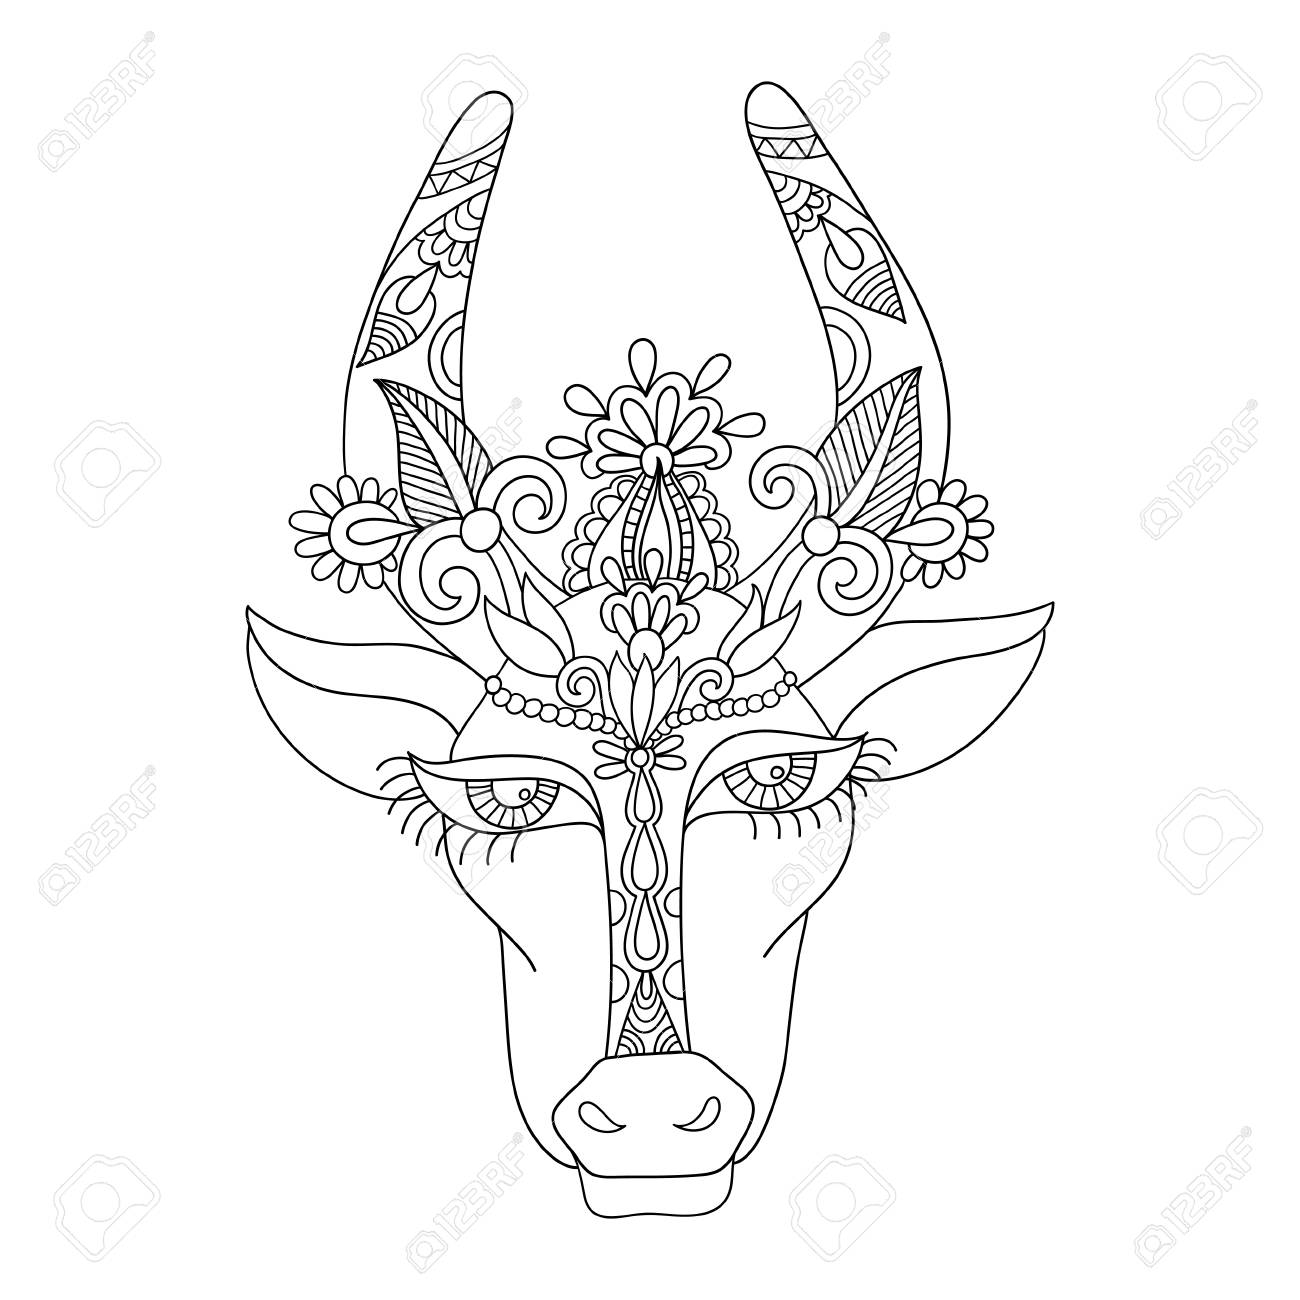 1300x1300 Line Decorative Drawing Of Indian Cow Head, Floral Stylized